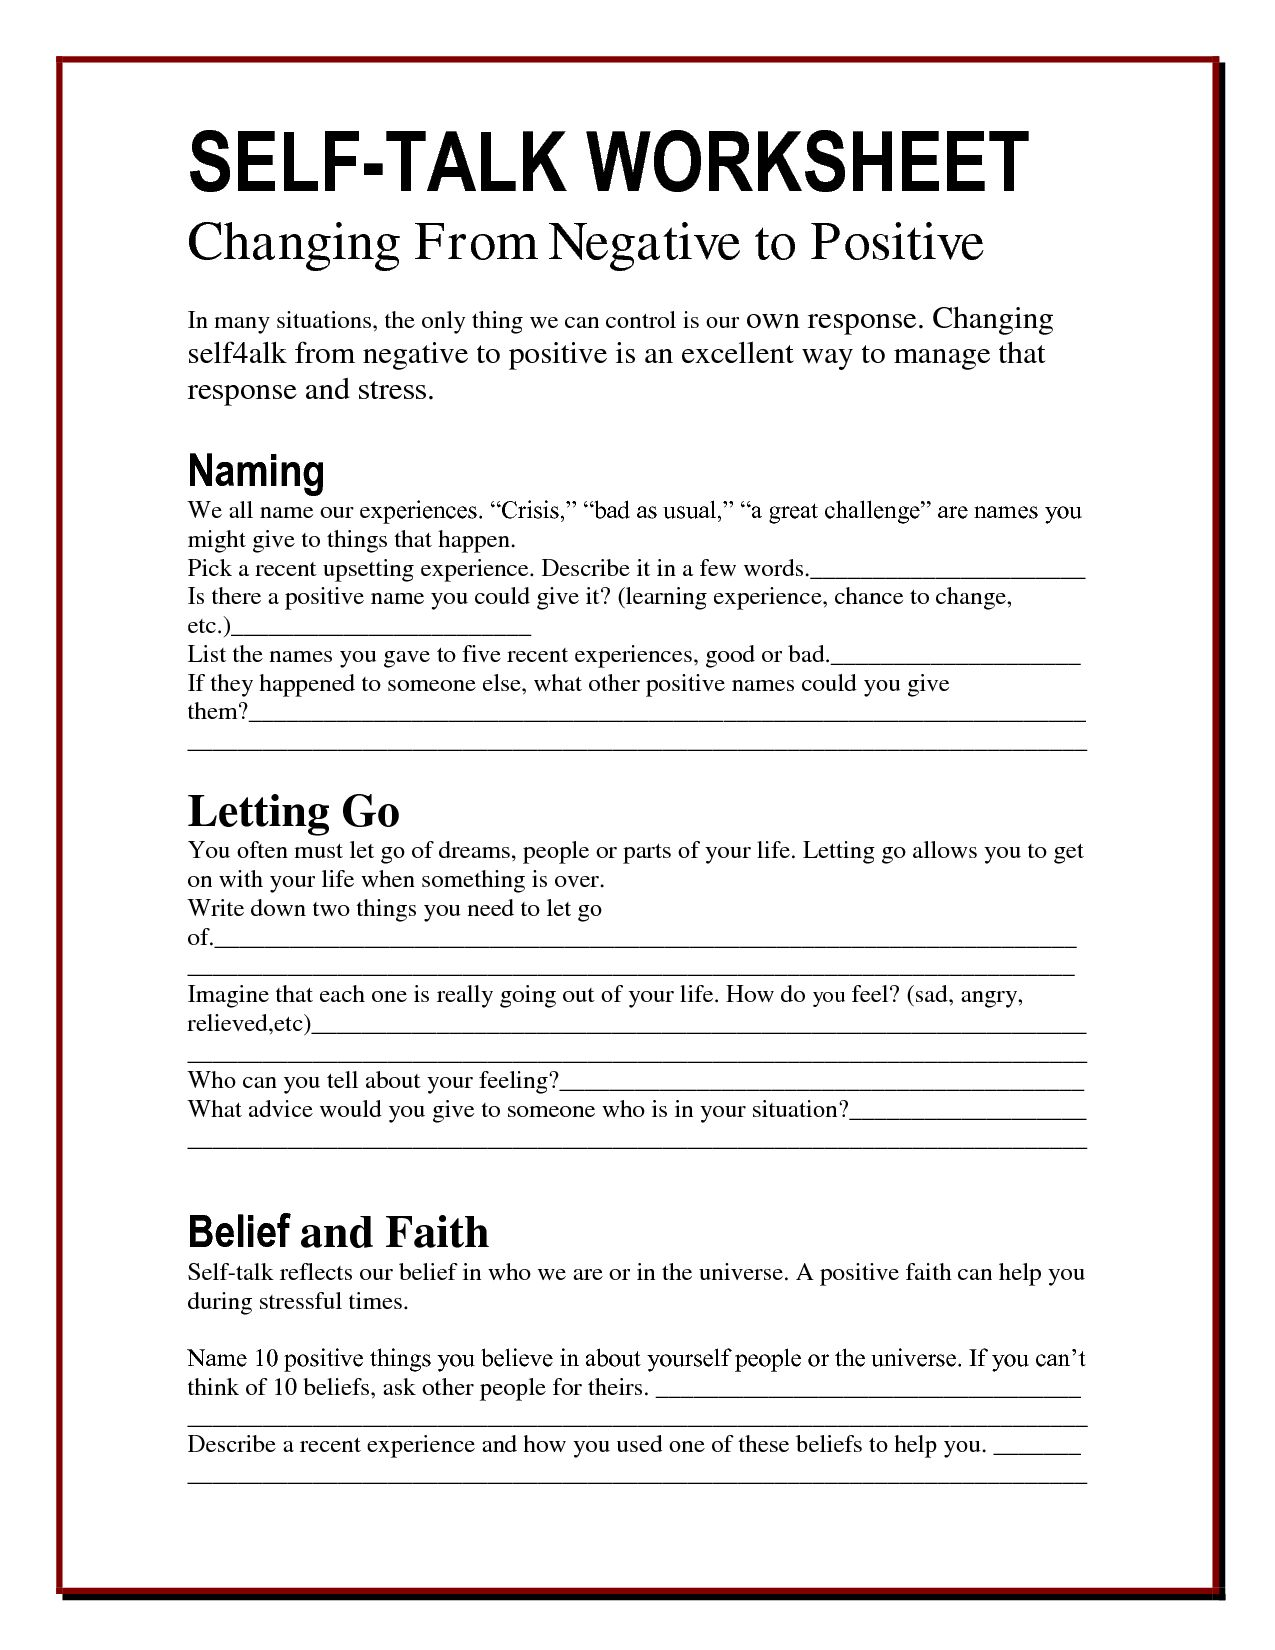 worksheet Communication Skills Worksheets For Adults i statements preview trchild life pinterest worksheets therapy and social work